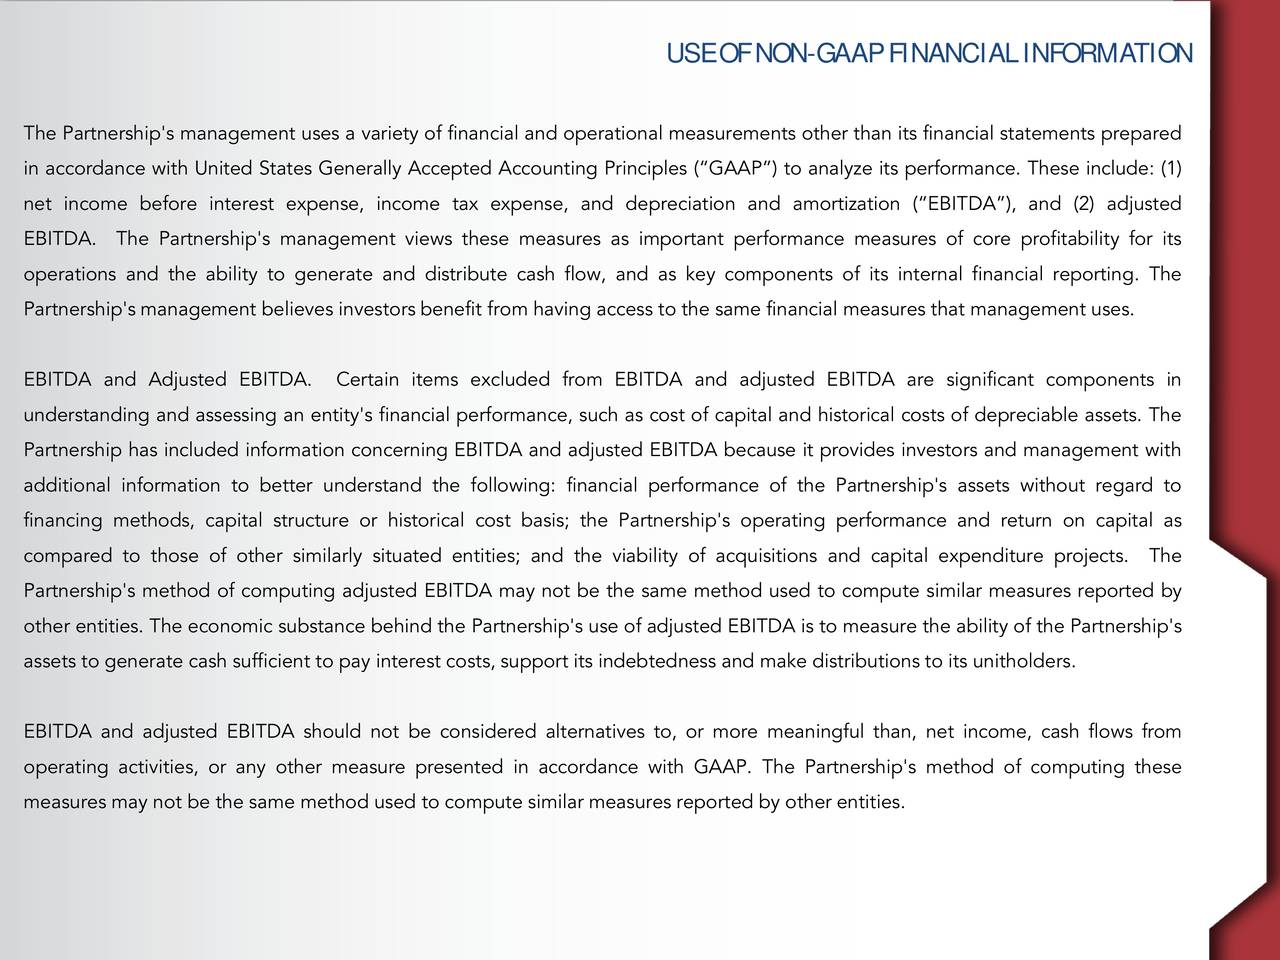 The Partnership's management uses a variety of financial and operational measurements other than its financial statements prepared in accordance with United States Generally Accepted Accounting Principles (GAAP) to analyze its performance. These include: (1) net income before interest expense, income tax expense, and depreciation and amortization (EBITDA), and (2) adjusted EBITDA. The Partnership's management views these measures as important performance measures of core profitability for its operations and the ability to generate and distribute cash flow, and as key components of its internal financial reporting. The Partnership's management believes investors benefit from having access to the same financial measures that management uses. EBITDA and Adjusted EBITDA. Certain items excluded from EBITDA and adjusted EBITDA are significant components in understanding and assessing an entity's financial performance, such as cost of capital and historical costs of depreciable assets. The Partnership has included information concerning EBITDA and adjusted EBITDA because it provides investors and management with additional information to better understand the following: financial performance of the Partnership's assets without regard to financing methods, capital structure or historical cost basis; the Partnership's operating performance and return on capital as compared to those of other similarly situated entities; and the viability of acquisitions and capital expenditure projectThe Partnership's method of computing adjusted EBITDA may not be the same method used to compute similar measures reported by other entities. The economic substance behind the Partnership's use of adjusted EBITDA is to measure the ability of the Partnership's assets to generate cash sufficient to pay interest costs, support its indebtedness and make distributions to its unitholders. EBITDA and adjusted EBITDA should not be considered alternatives to, or more meaningful than, net income, cash flow